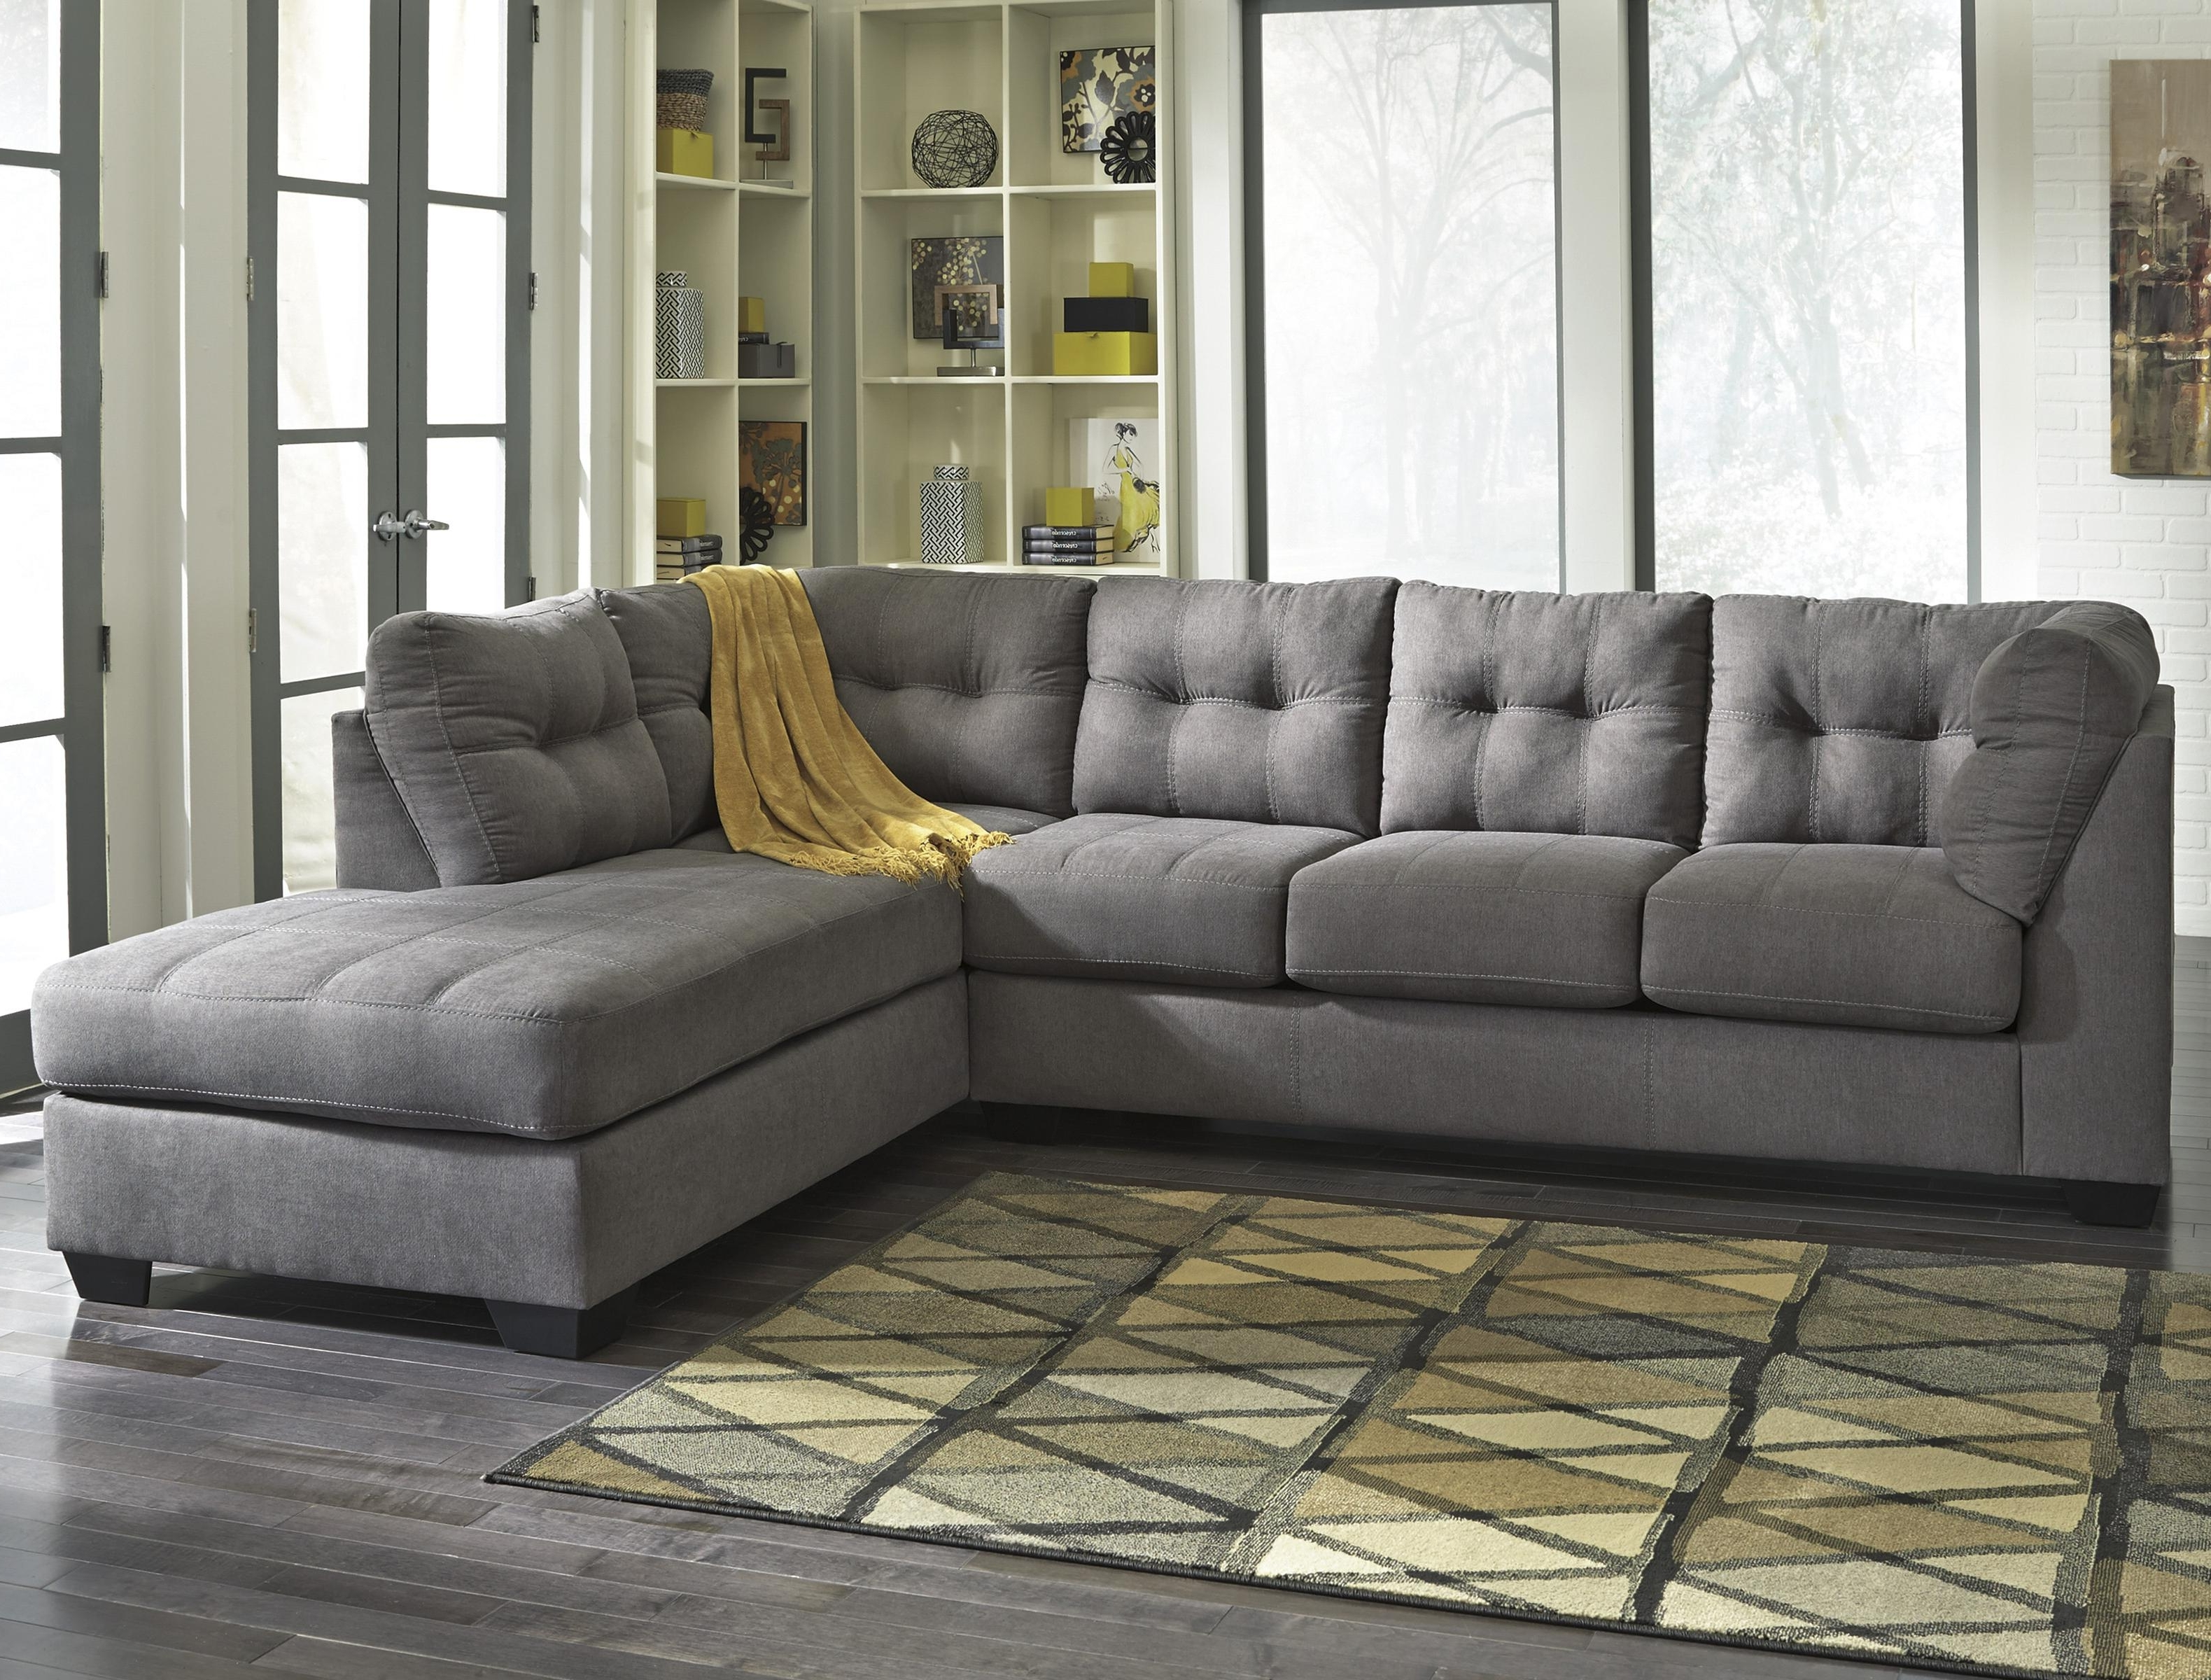 Best And Newest Chaise Lounge Sectional Sofas With Awesome Gray Sectional Sofa With Chaise Lounge 17 In Cozy (View 3 of 15)